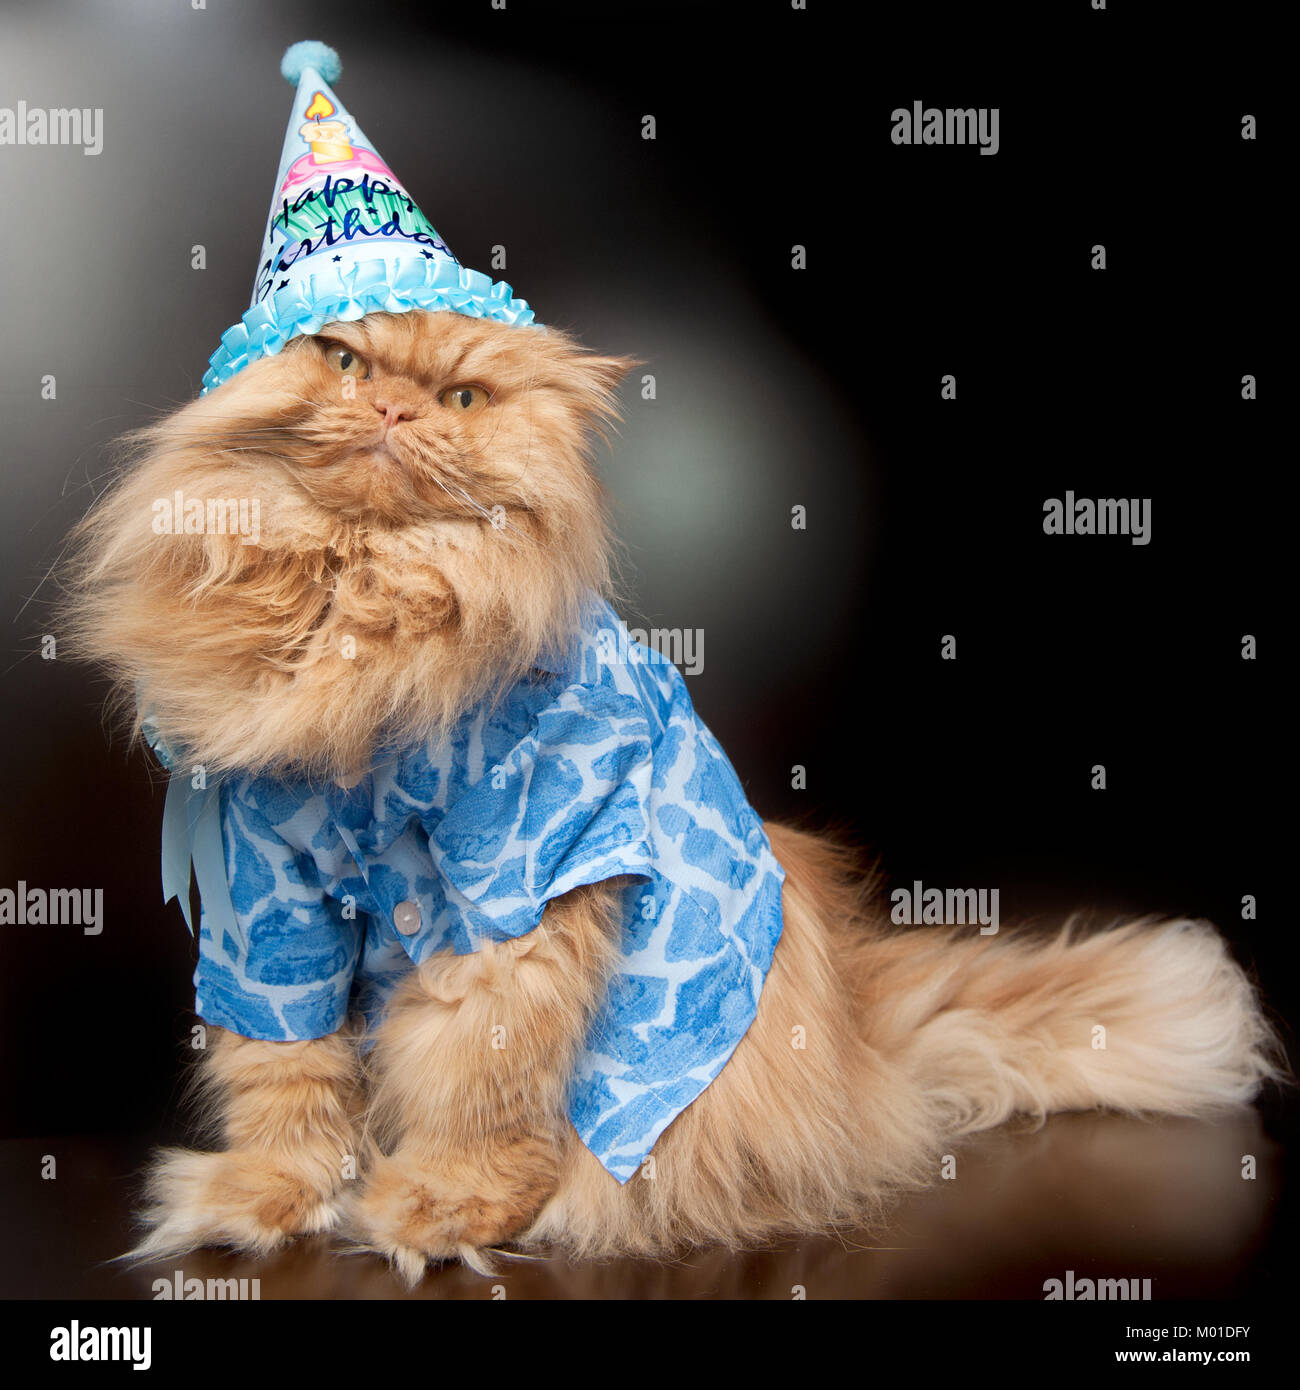 Orange Persian cat with birthday hat - Stock Image